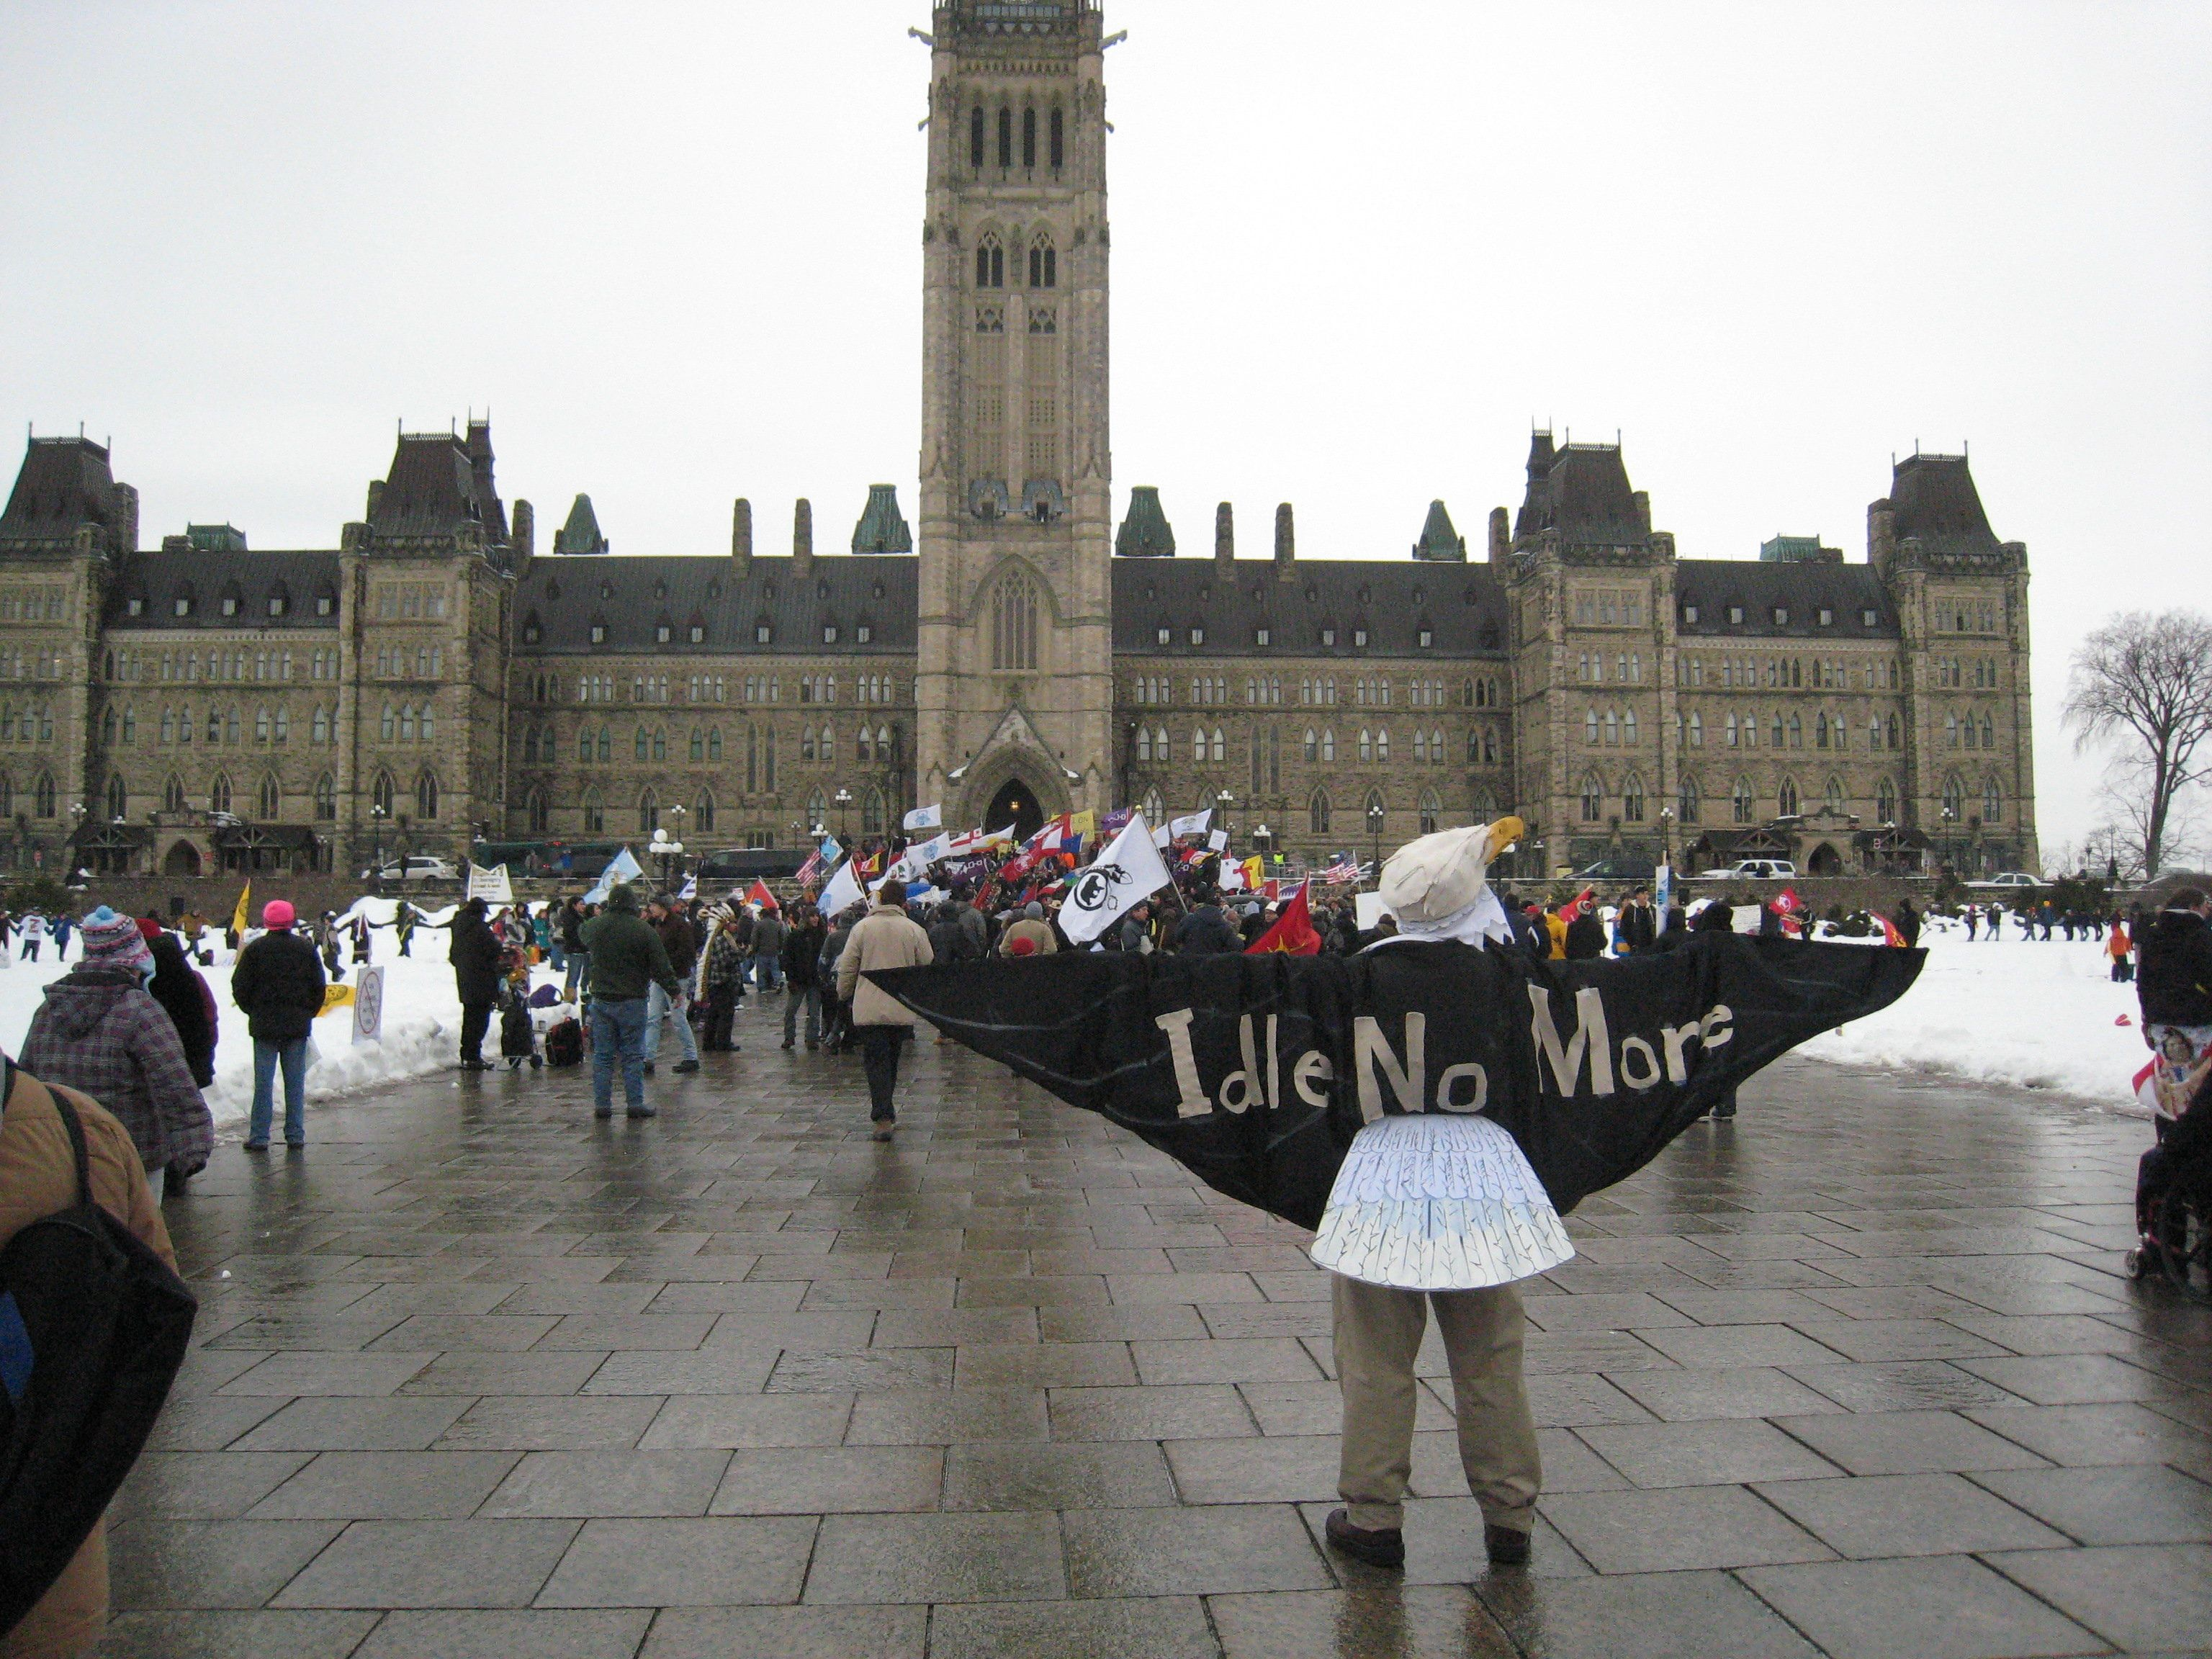 "<span class='image-component__caption' itemprop=""caption""><span style=""color: #262626; font-family: arial, sans-serif; font-size: 13px; line-height: 16px;"">The Idle No More Movement holds a protest on Parliament Hill.</span></span>"